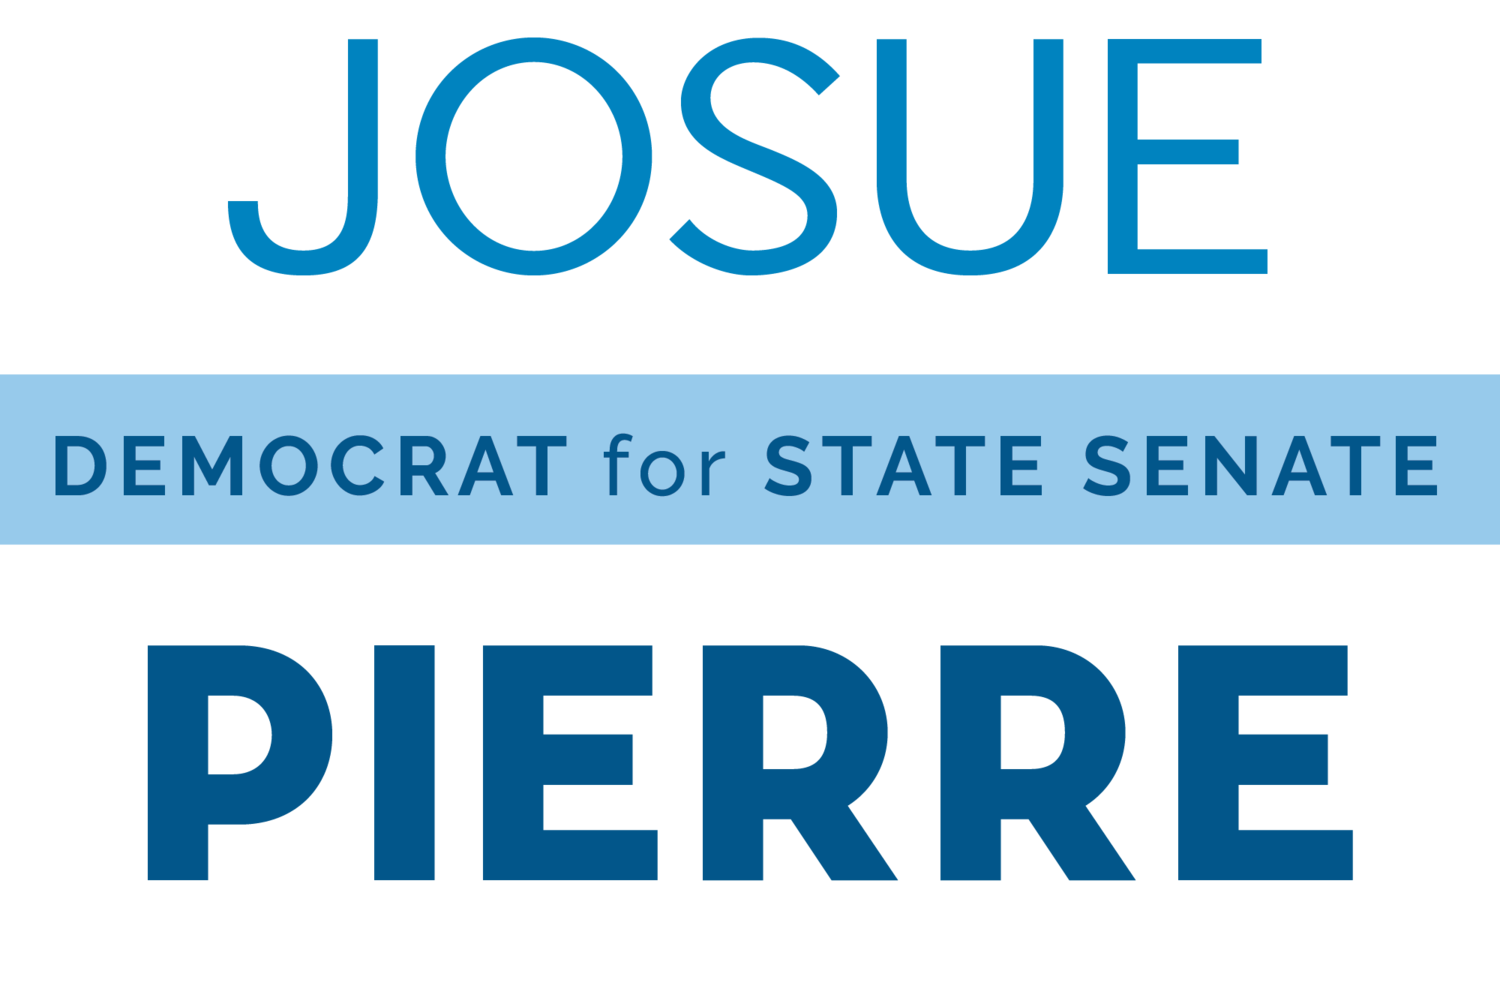 Josue Pierre for State Senate